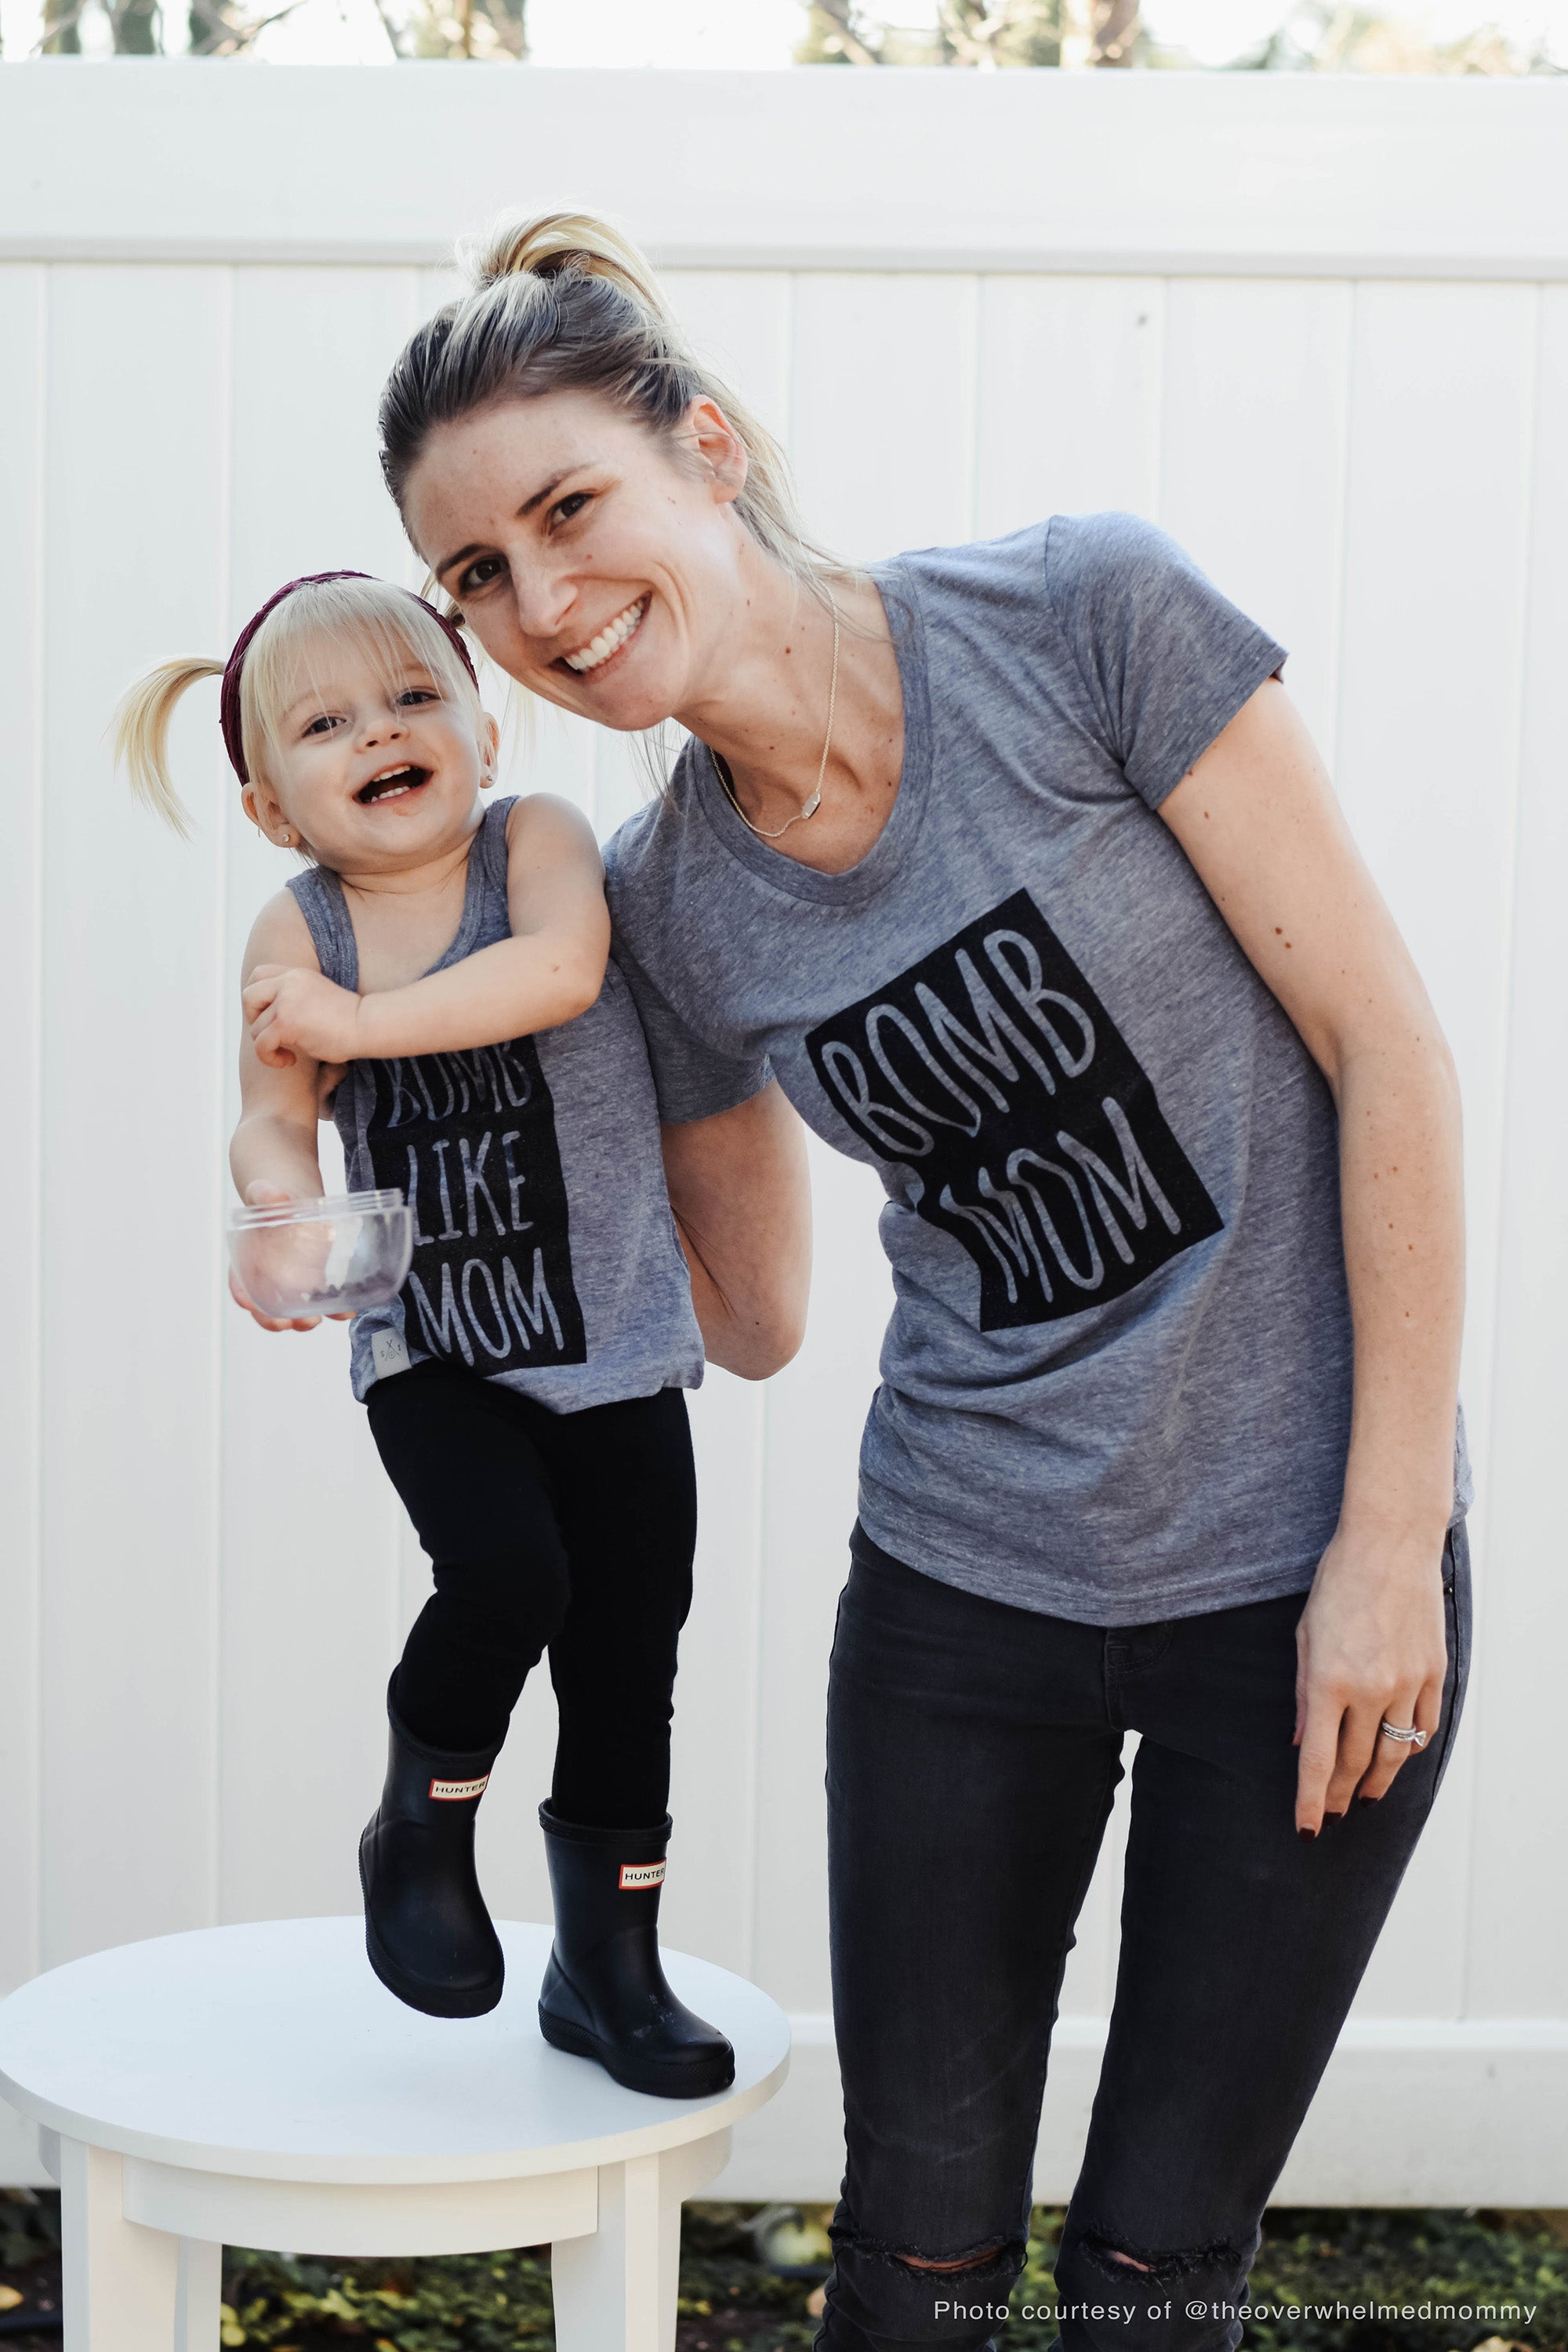 b0mb mom tee - block letters